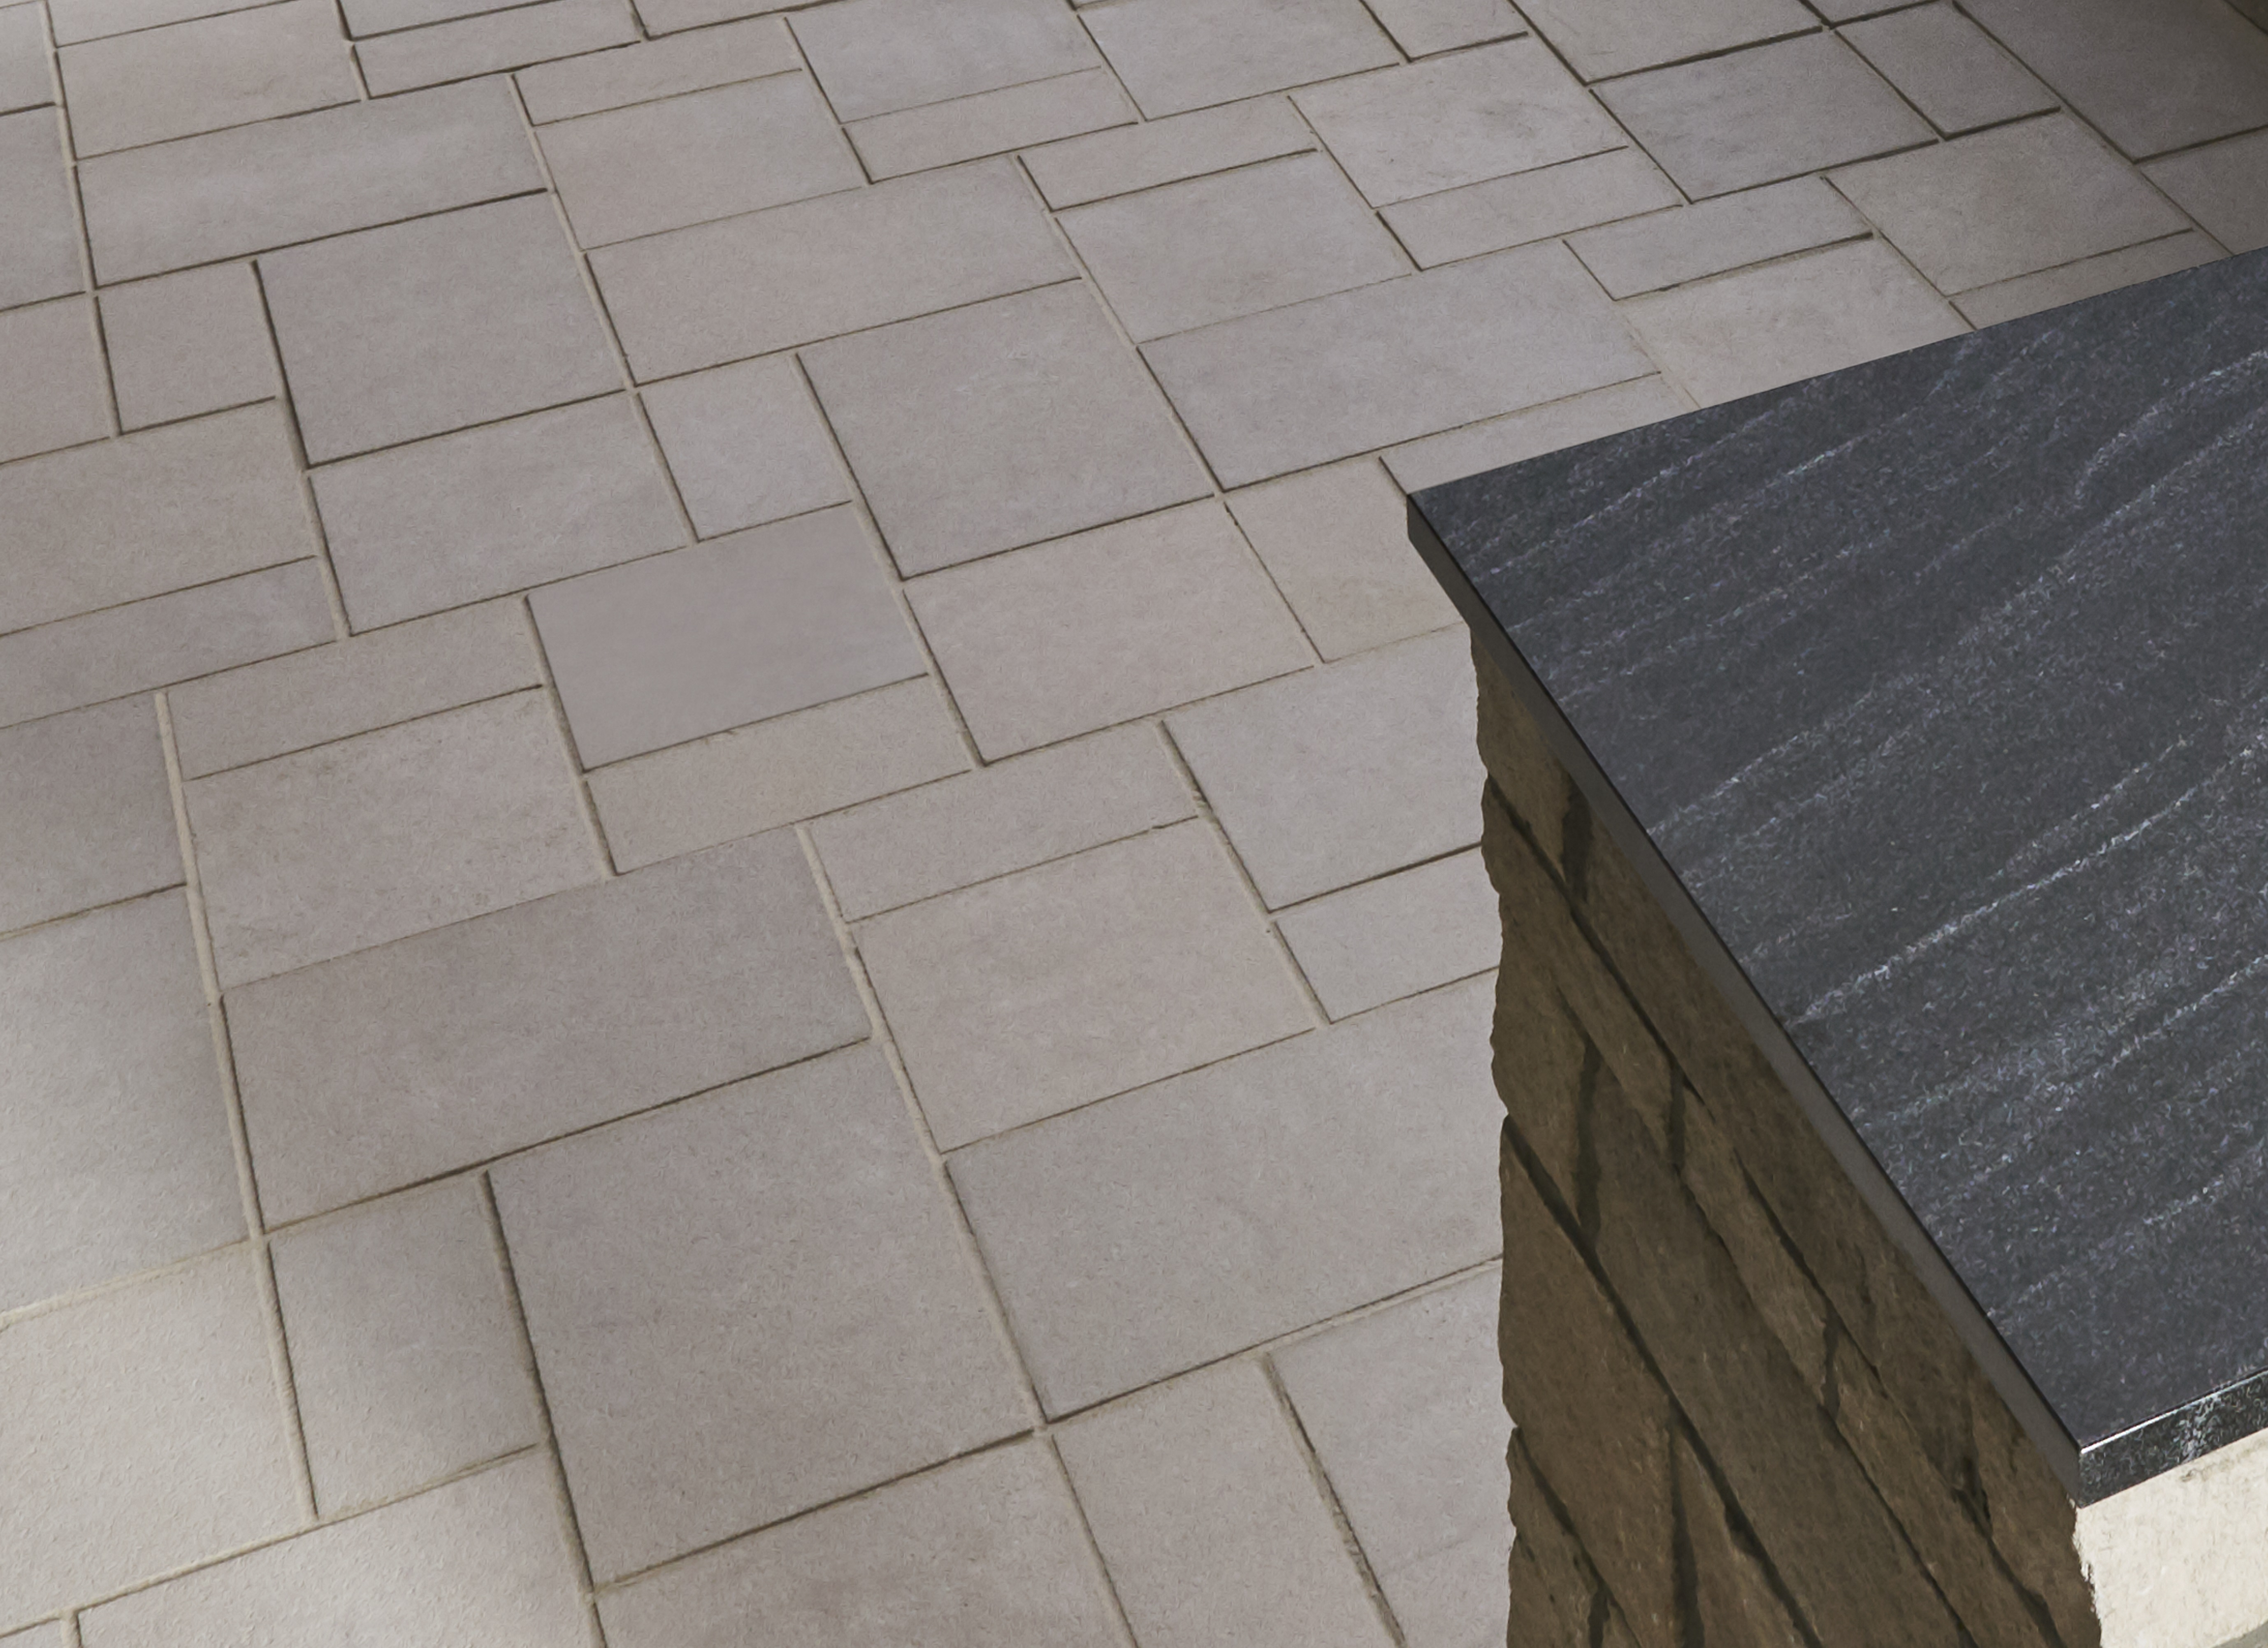 Indiana Limestone Full Color Blend pavers